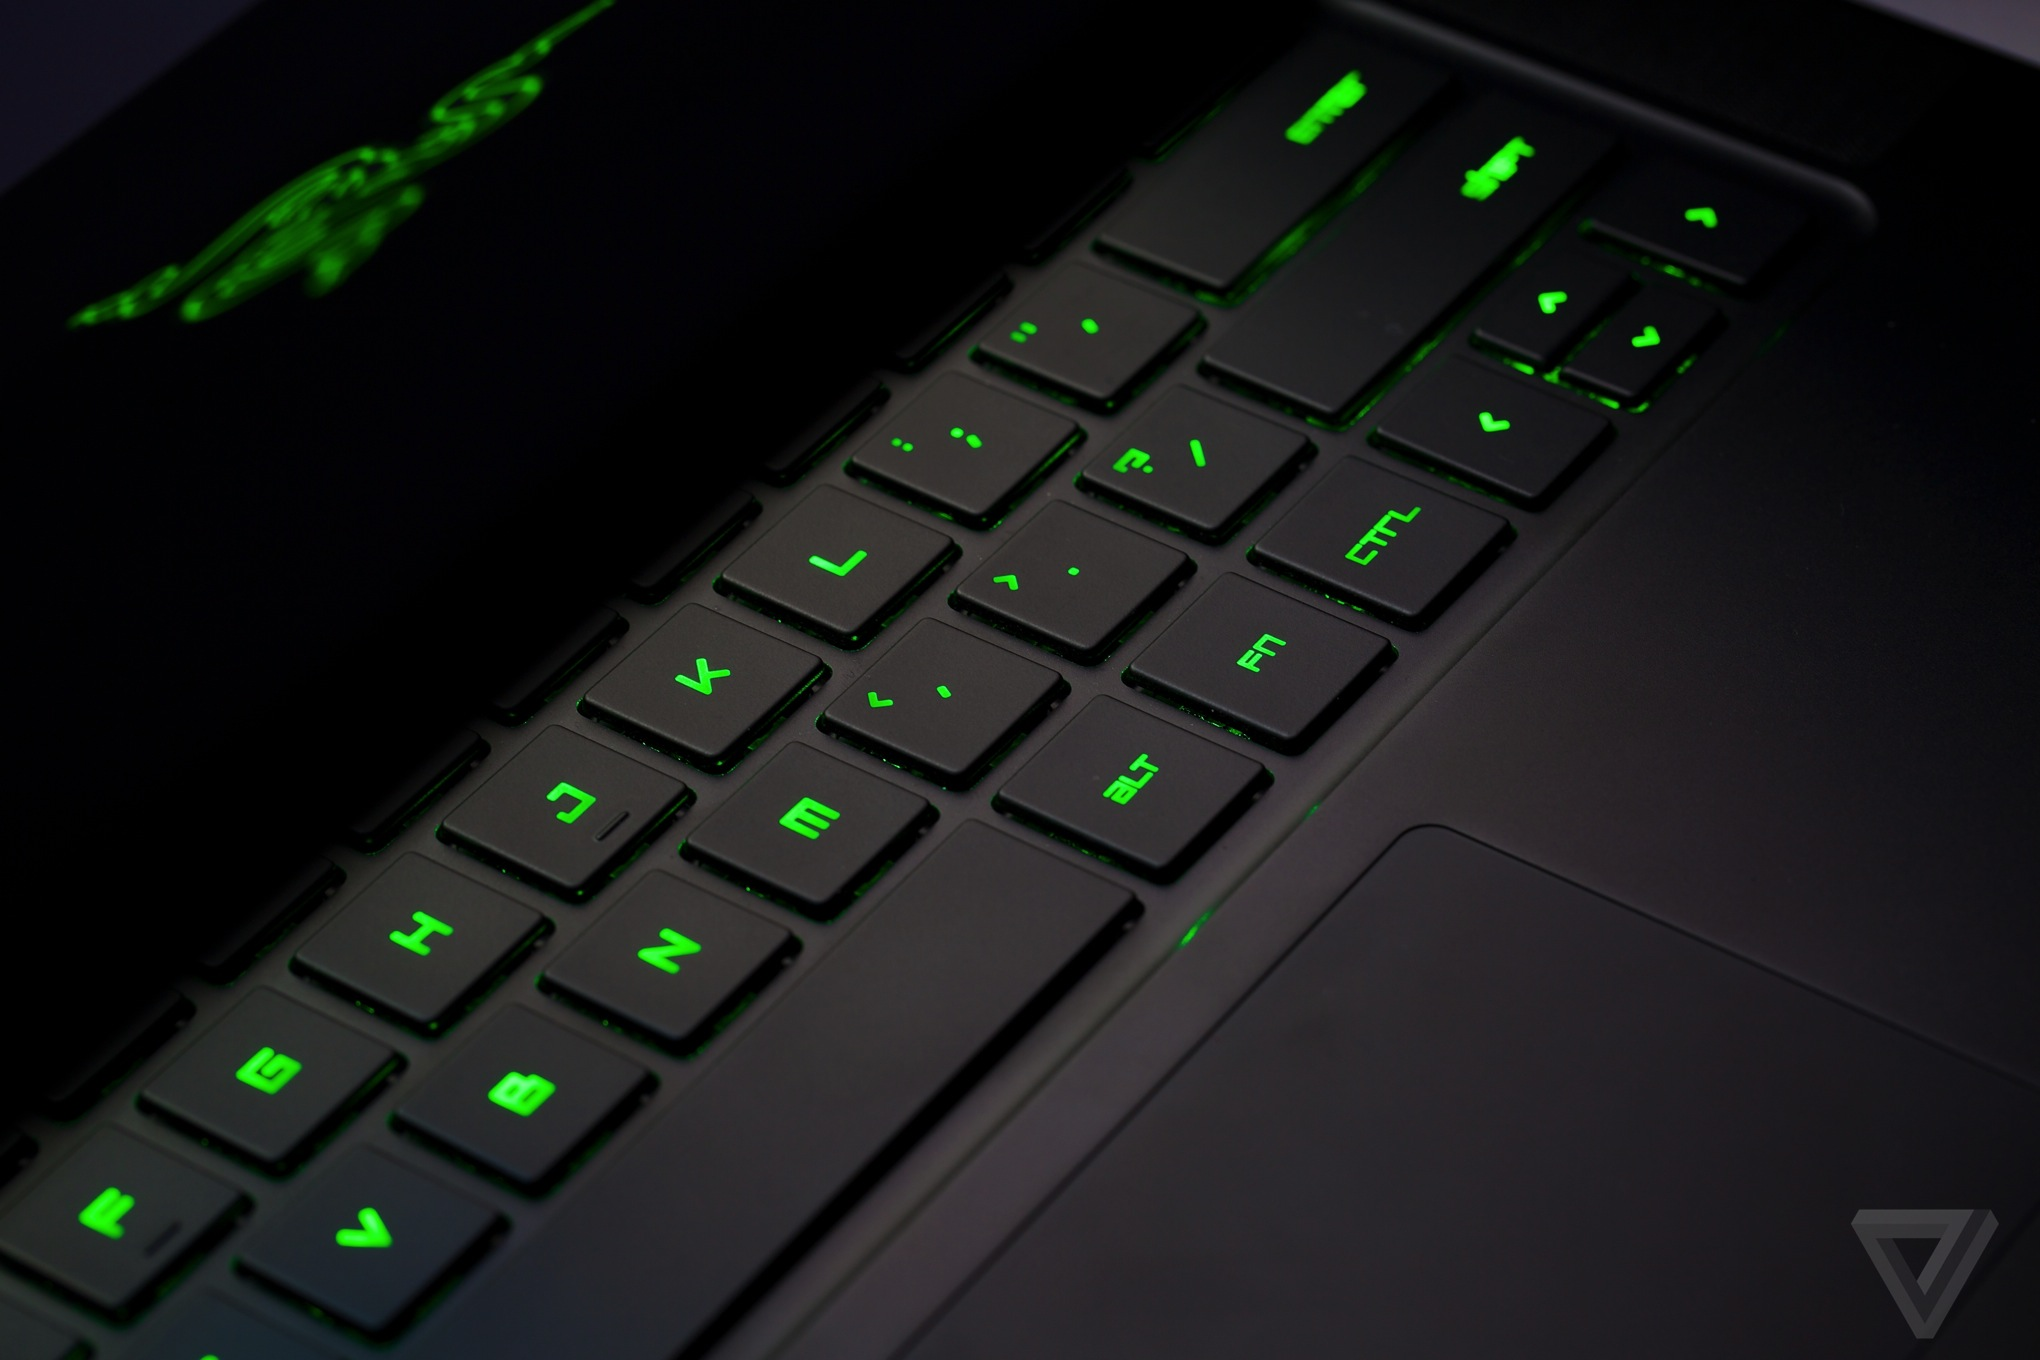 Razer-blade-hd-review-verge-04